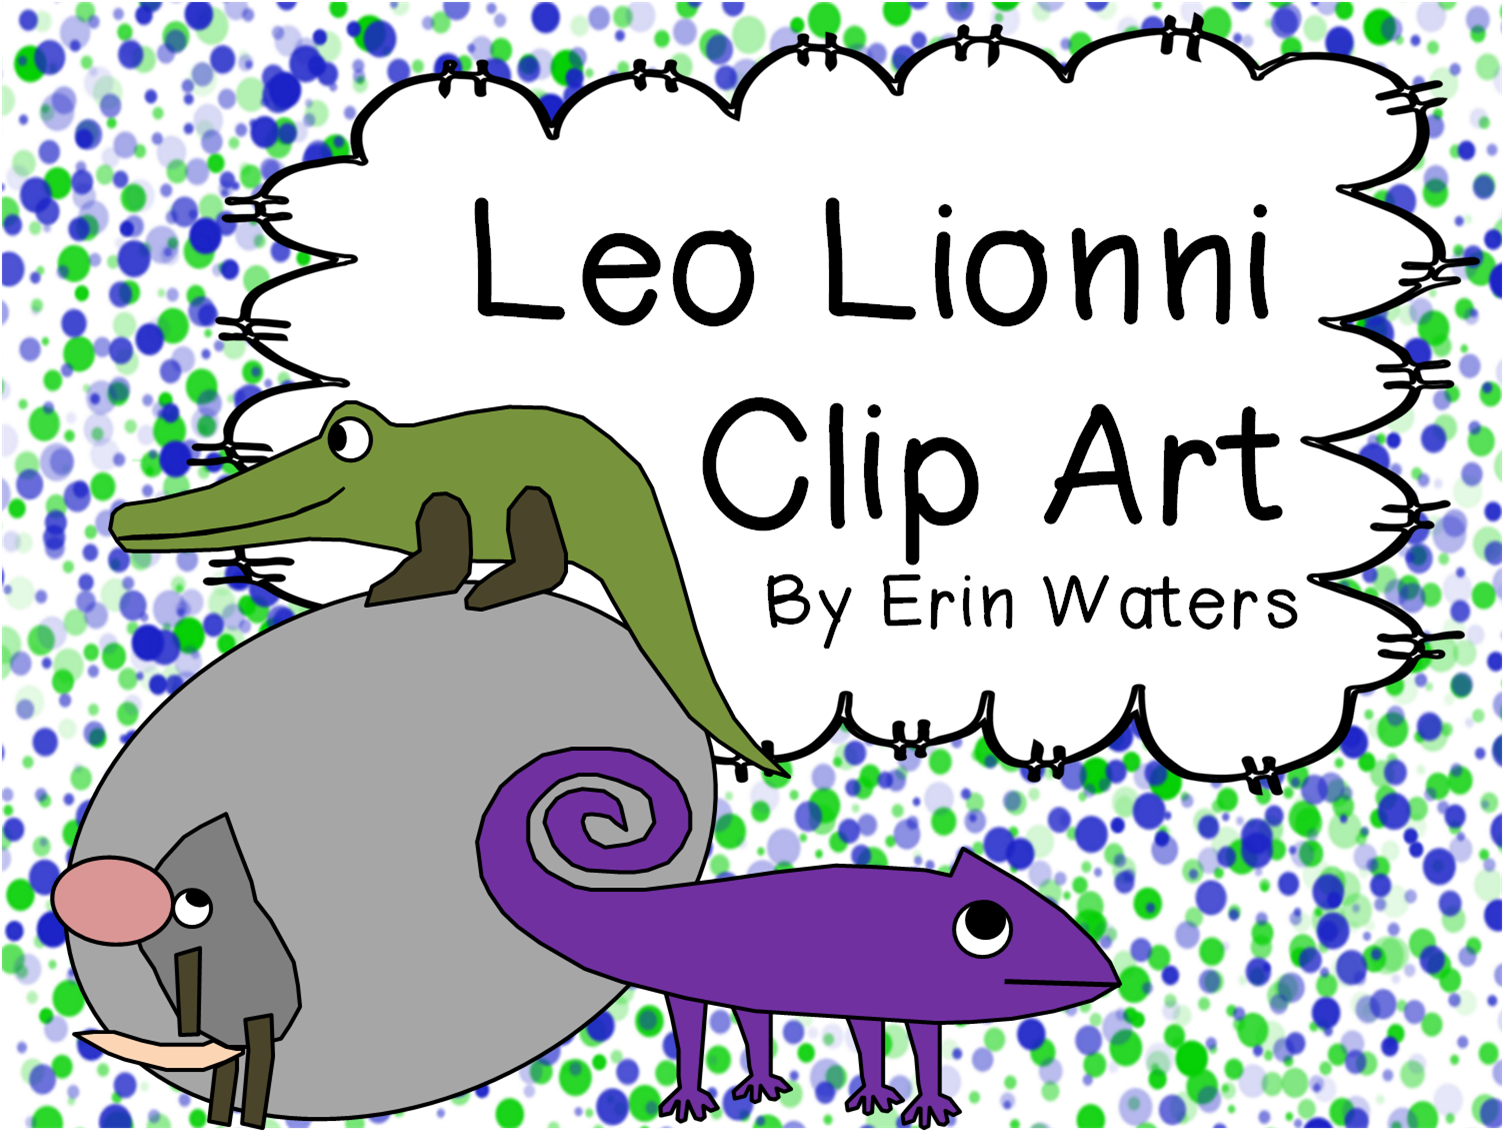 Love Leo Lionni He Has So Many Great Books For Teaching And This Clip Art Is Perfect For